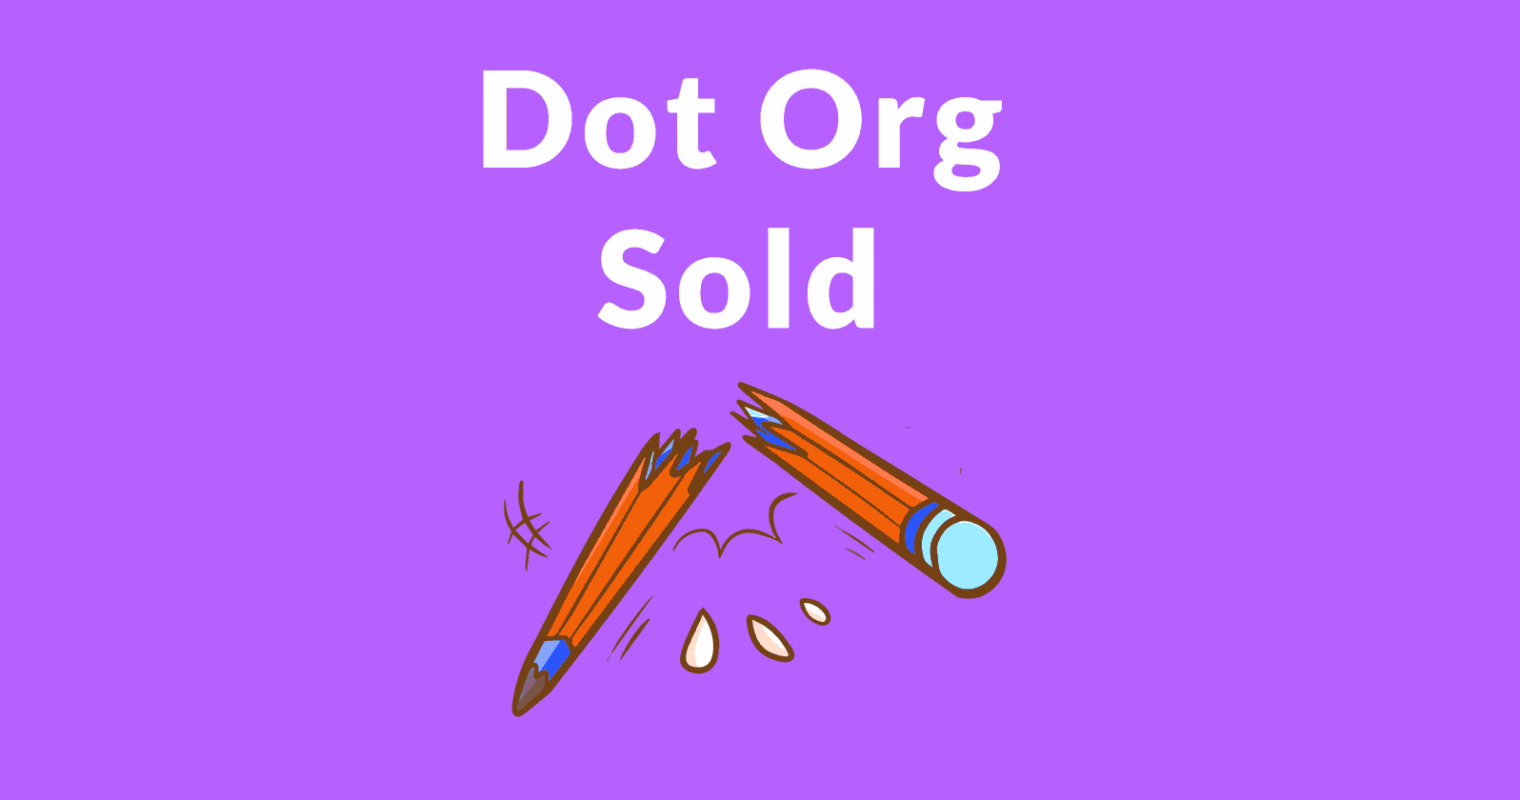 Dot Org Registry Sold to an Investment Firm